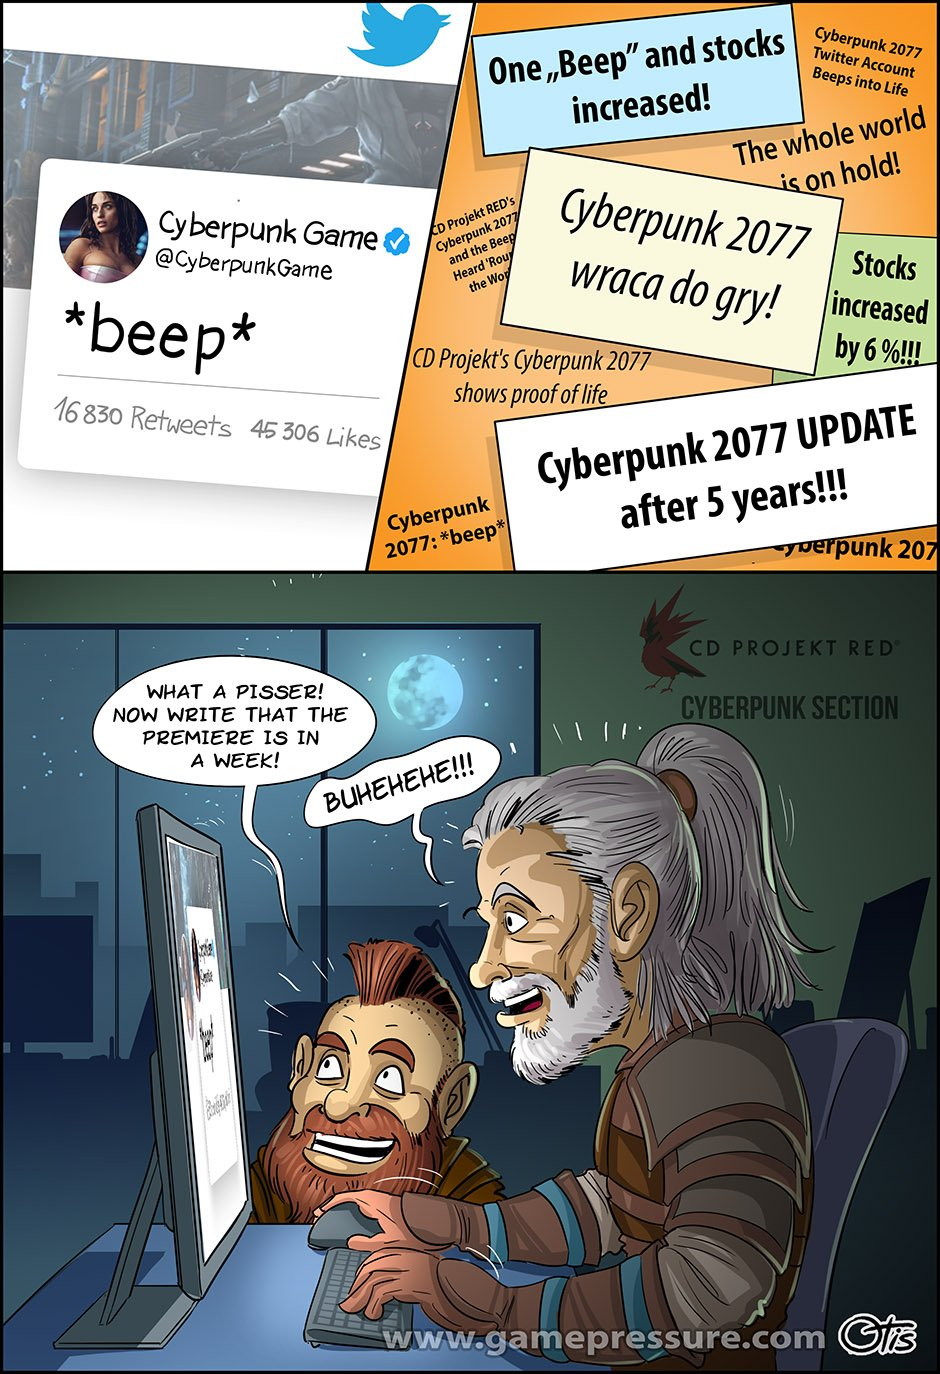 Who sent the *beep* from Cyberpunk?!, comics Cartoon Games, #230. We've been waiting for so long to hear something about Cyberpunk 2077...